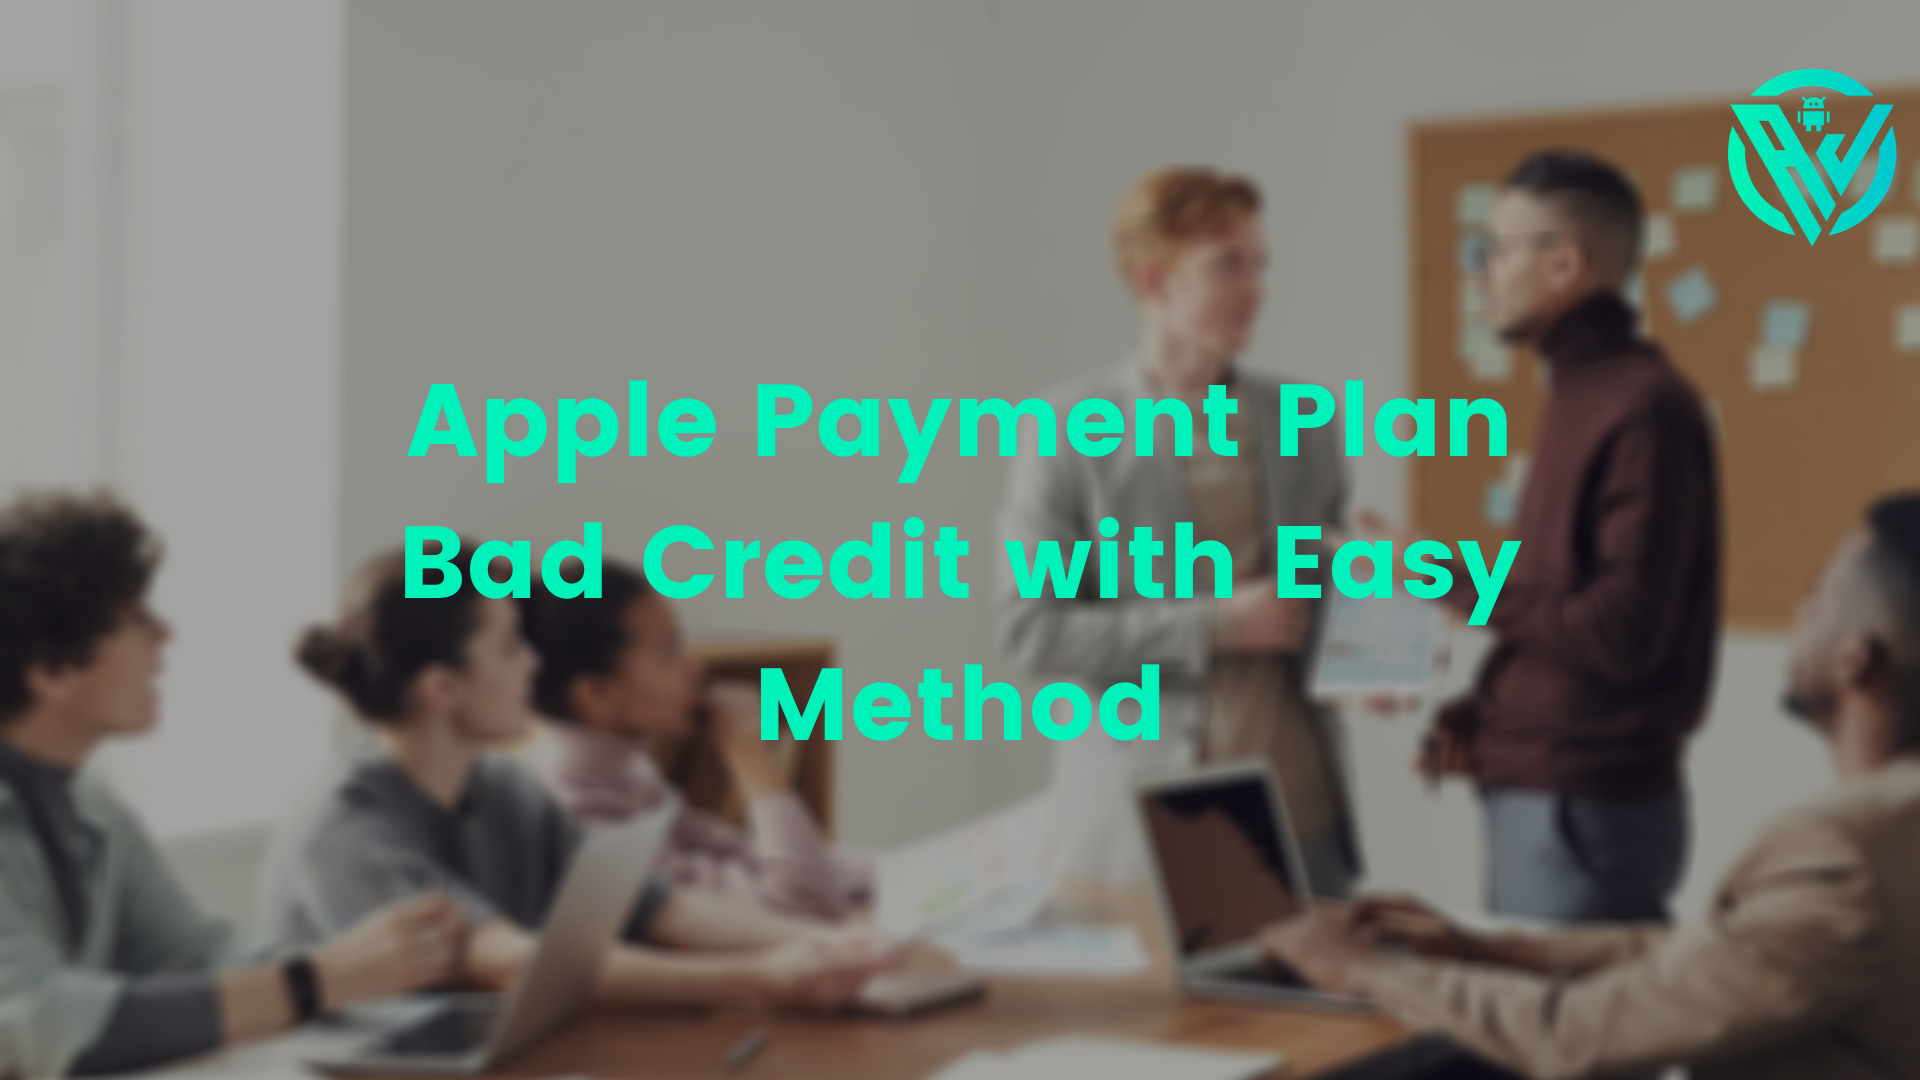 Apple Payment Plan; Bad Credit with Easy Method 2021 (Guide)